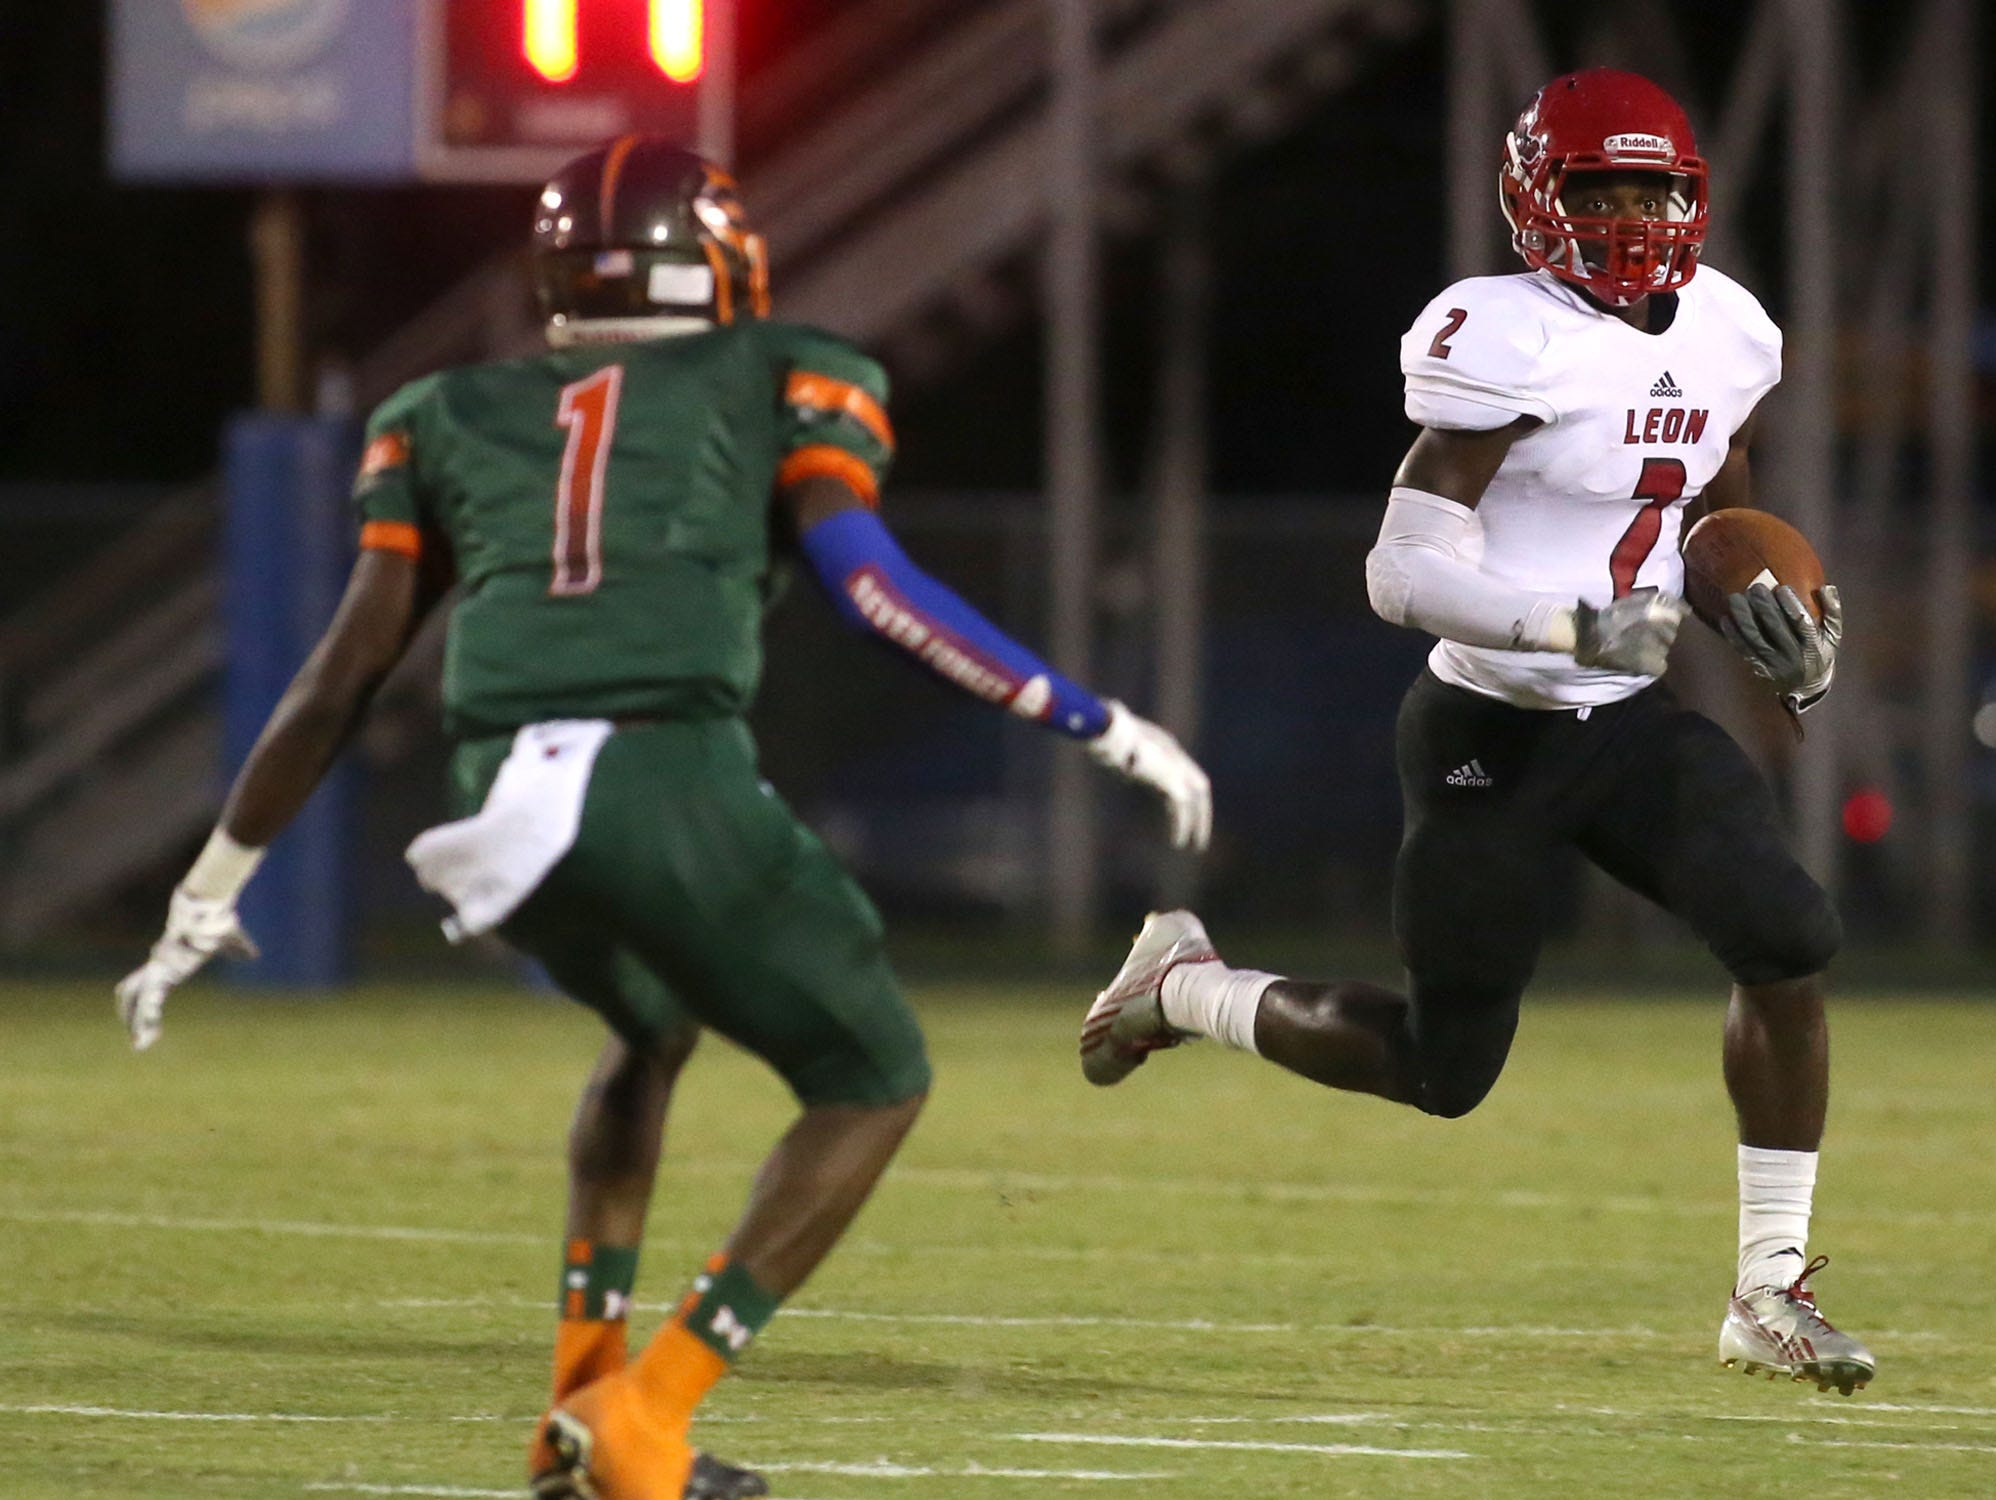 Leon's James Peterson runs the ball past Mosley's Devontia Wilson. Mosley faced off with Leon during a football game on Sept. 10. (Patti Blake | The News Herald)